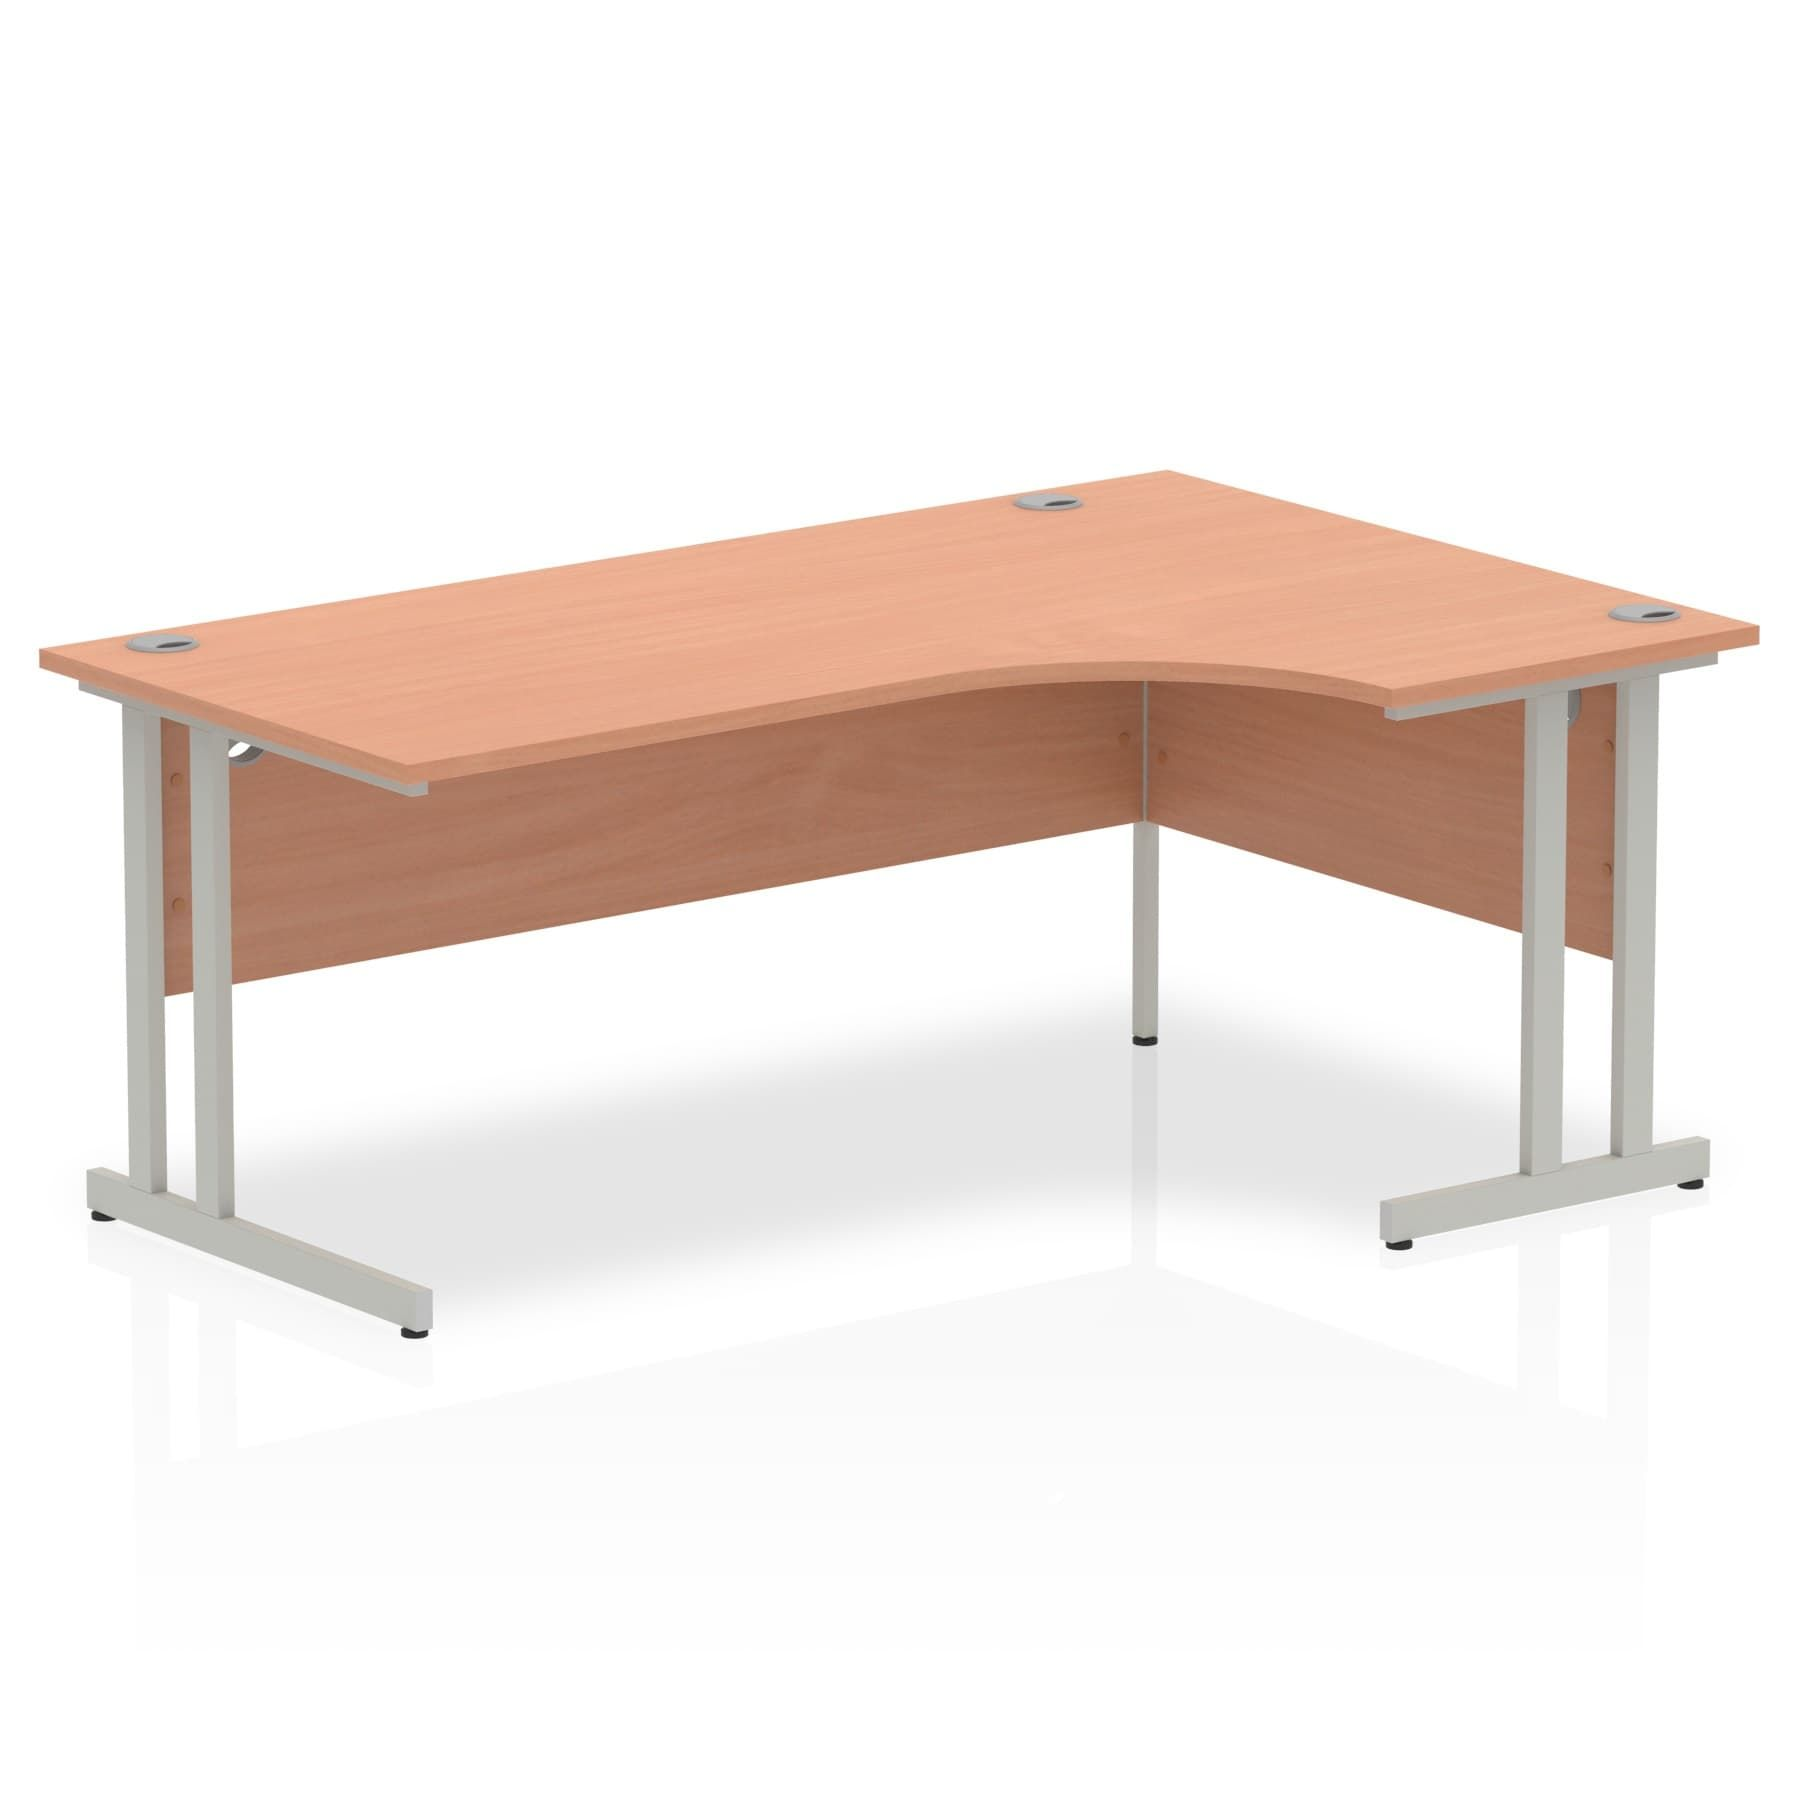 Impulse 1800 Right Hand Crescent Desk with Cantilever Leg